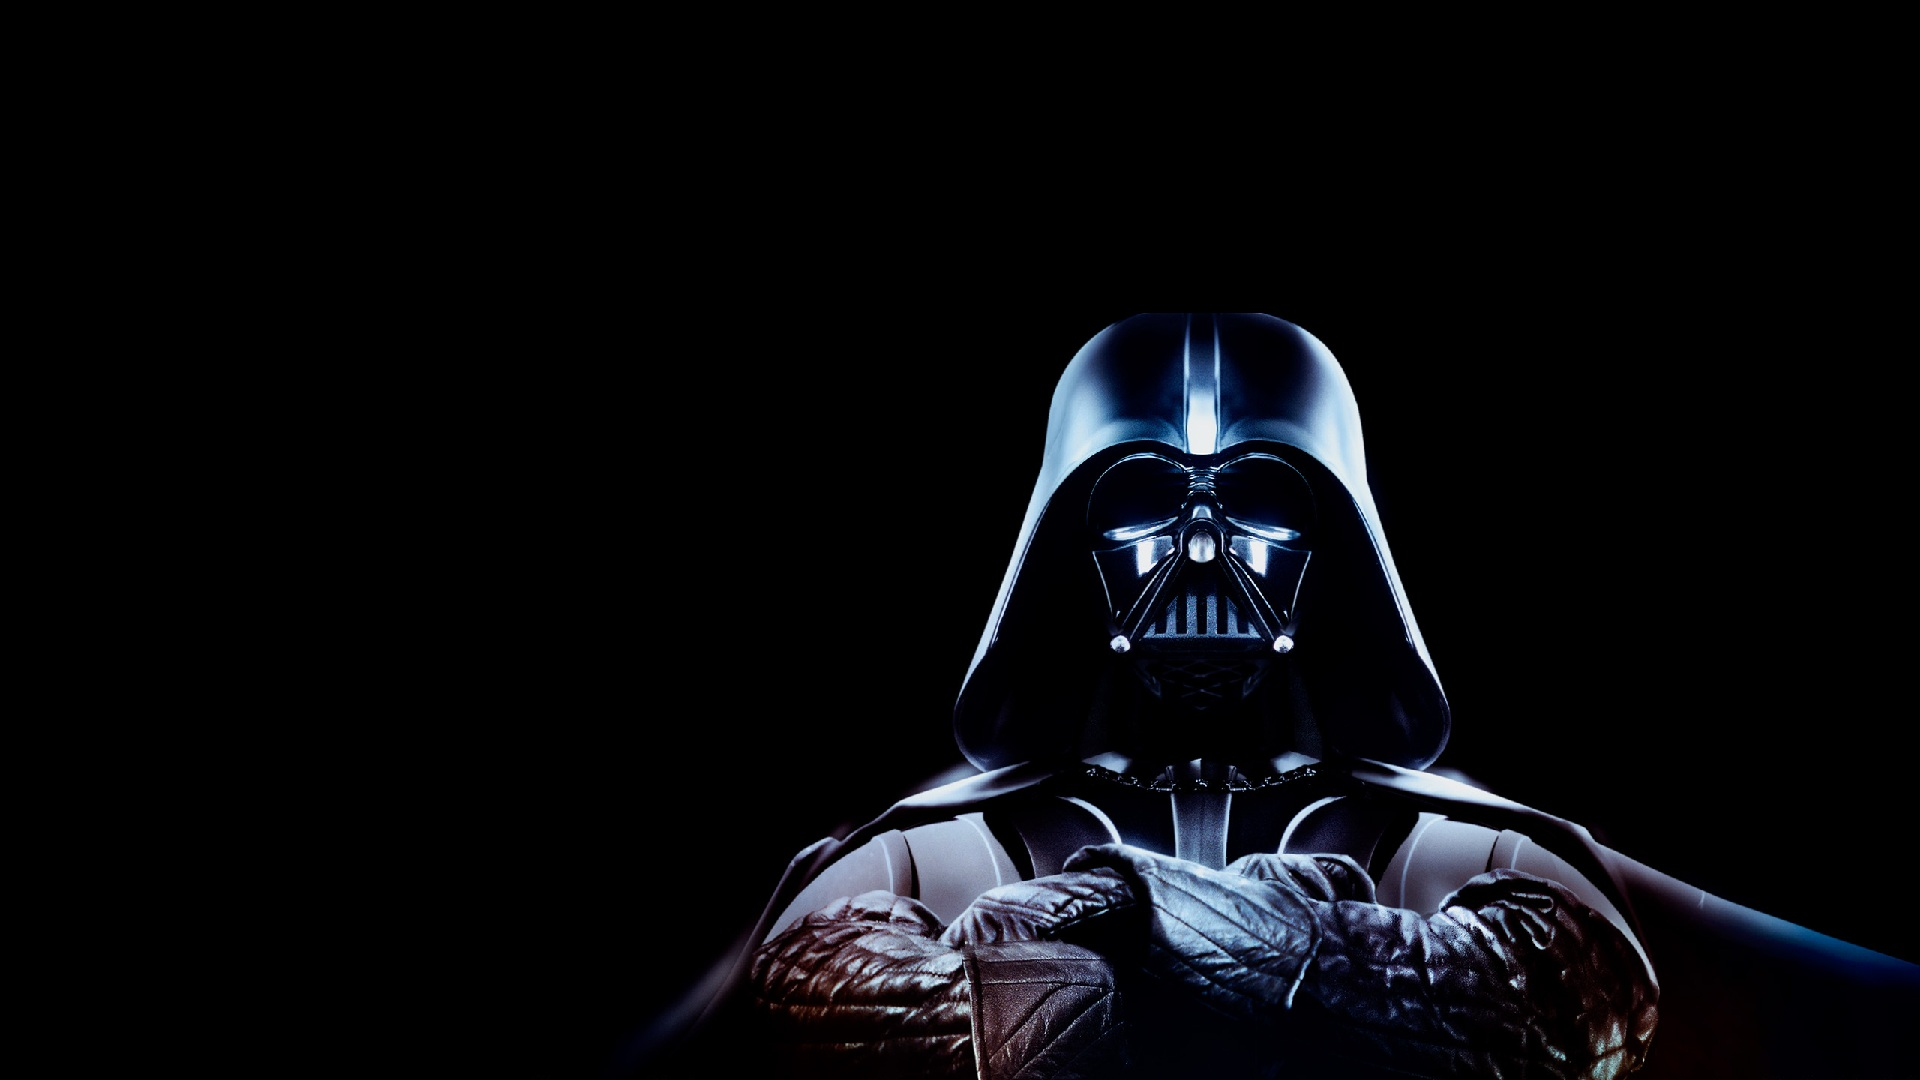 Download Wallpaper Star Wars